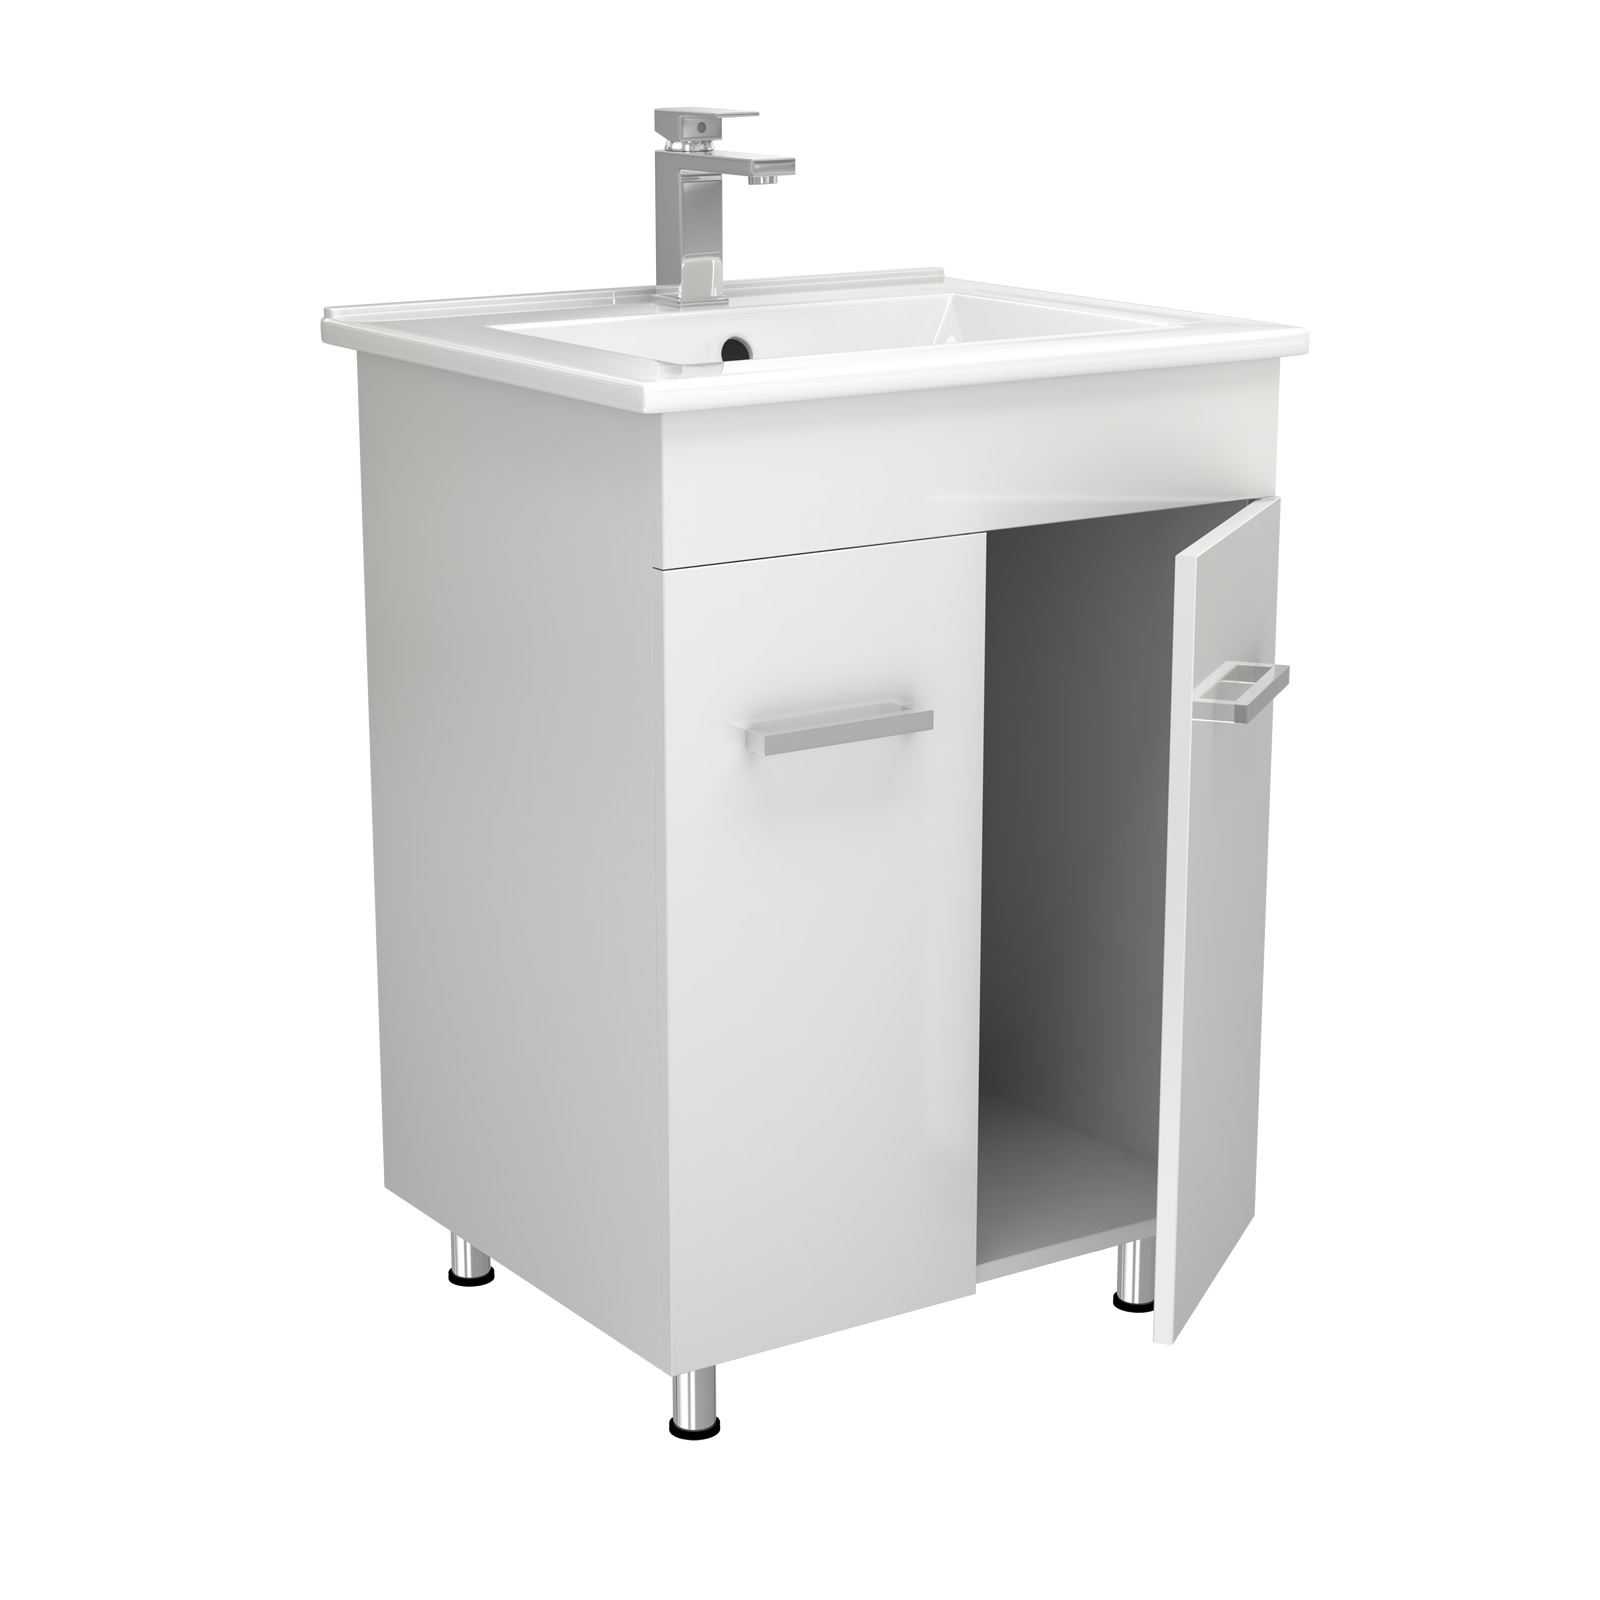 Modern High Gloss White Bathroom Furniture Vanity Storage Unit With Basin Sink Ebay